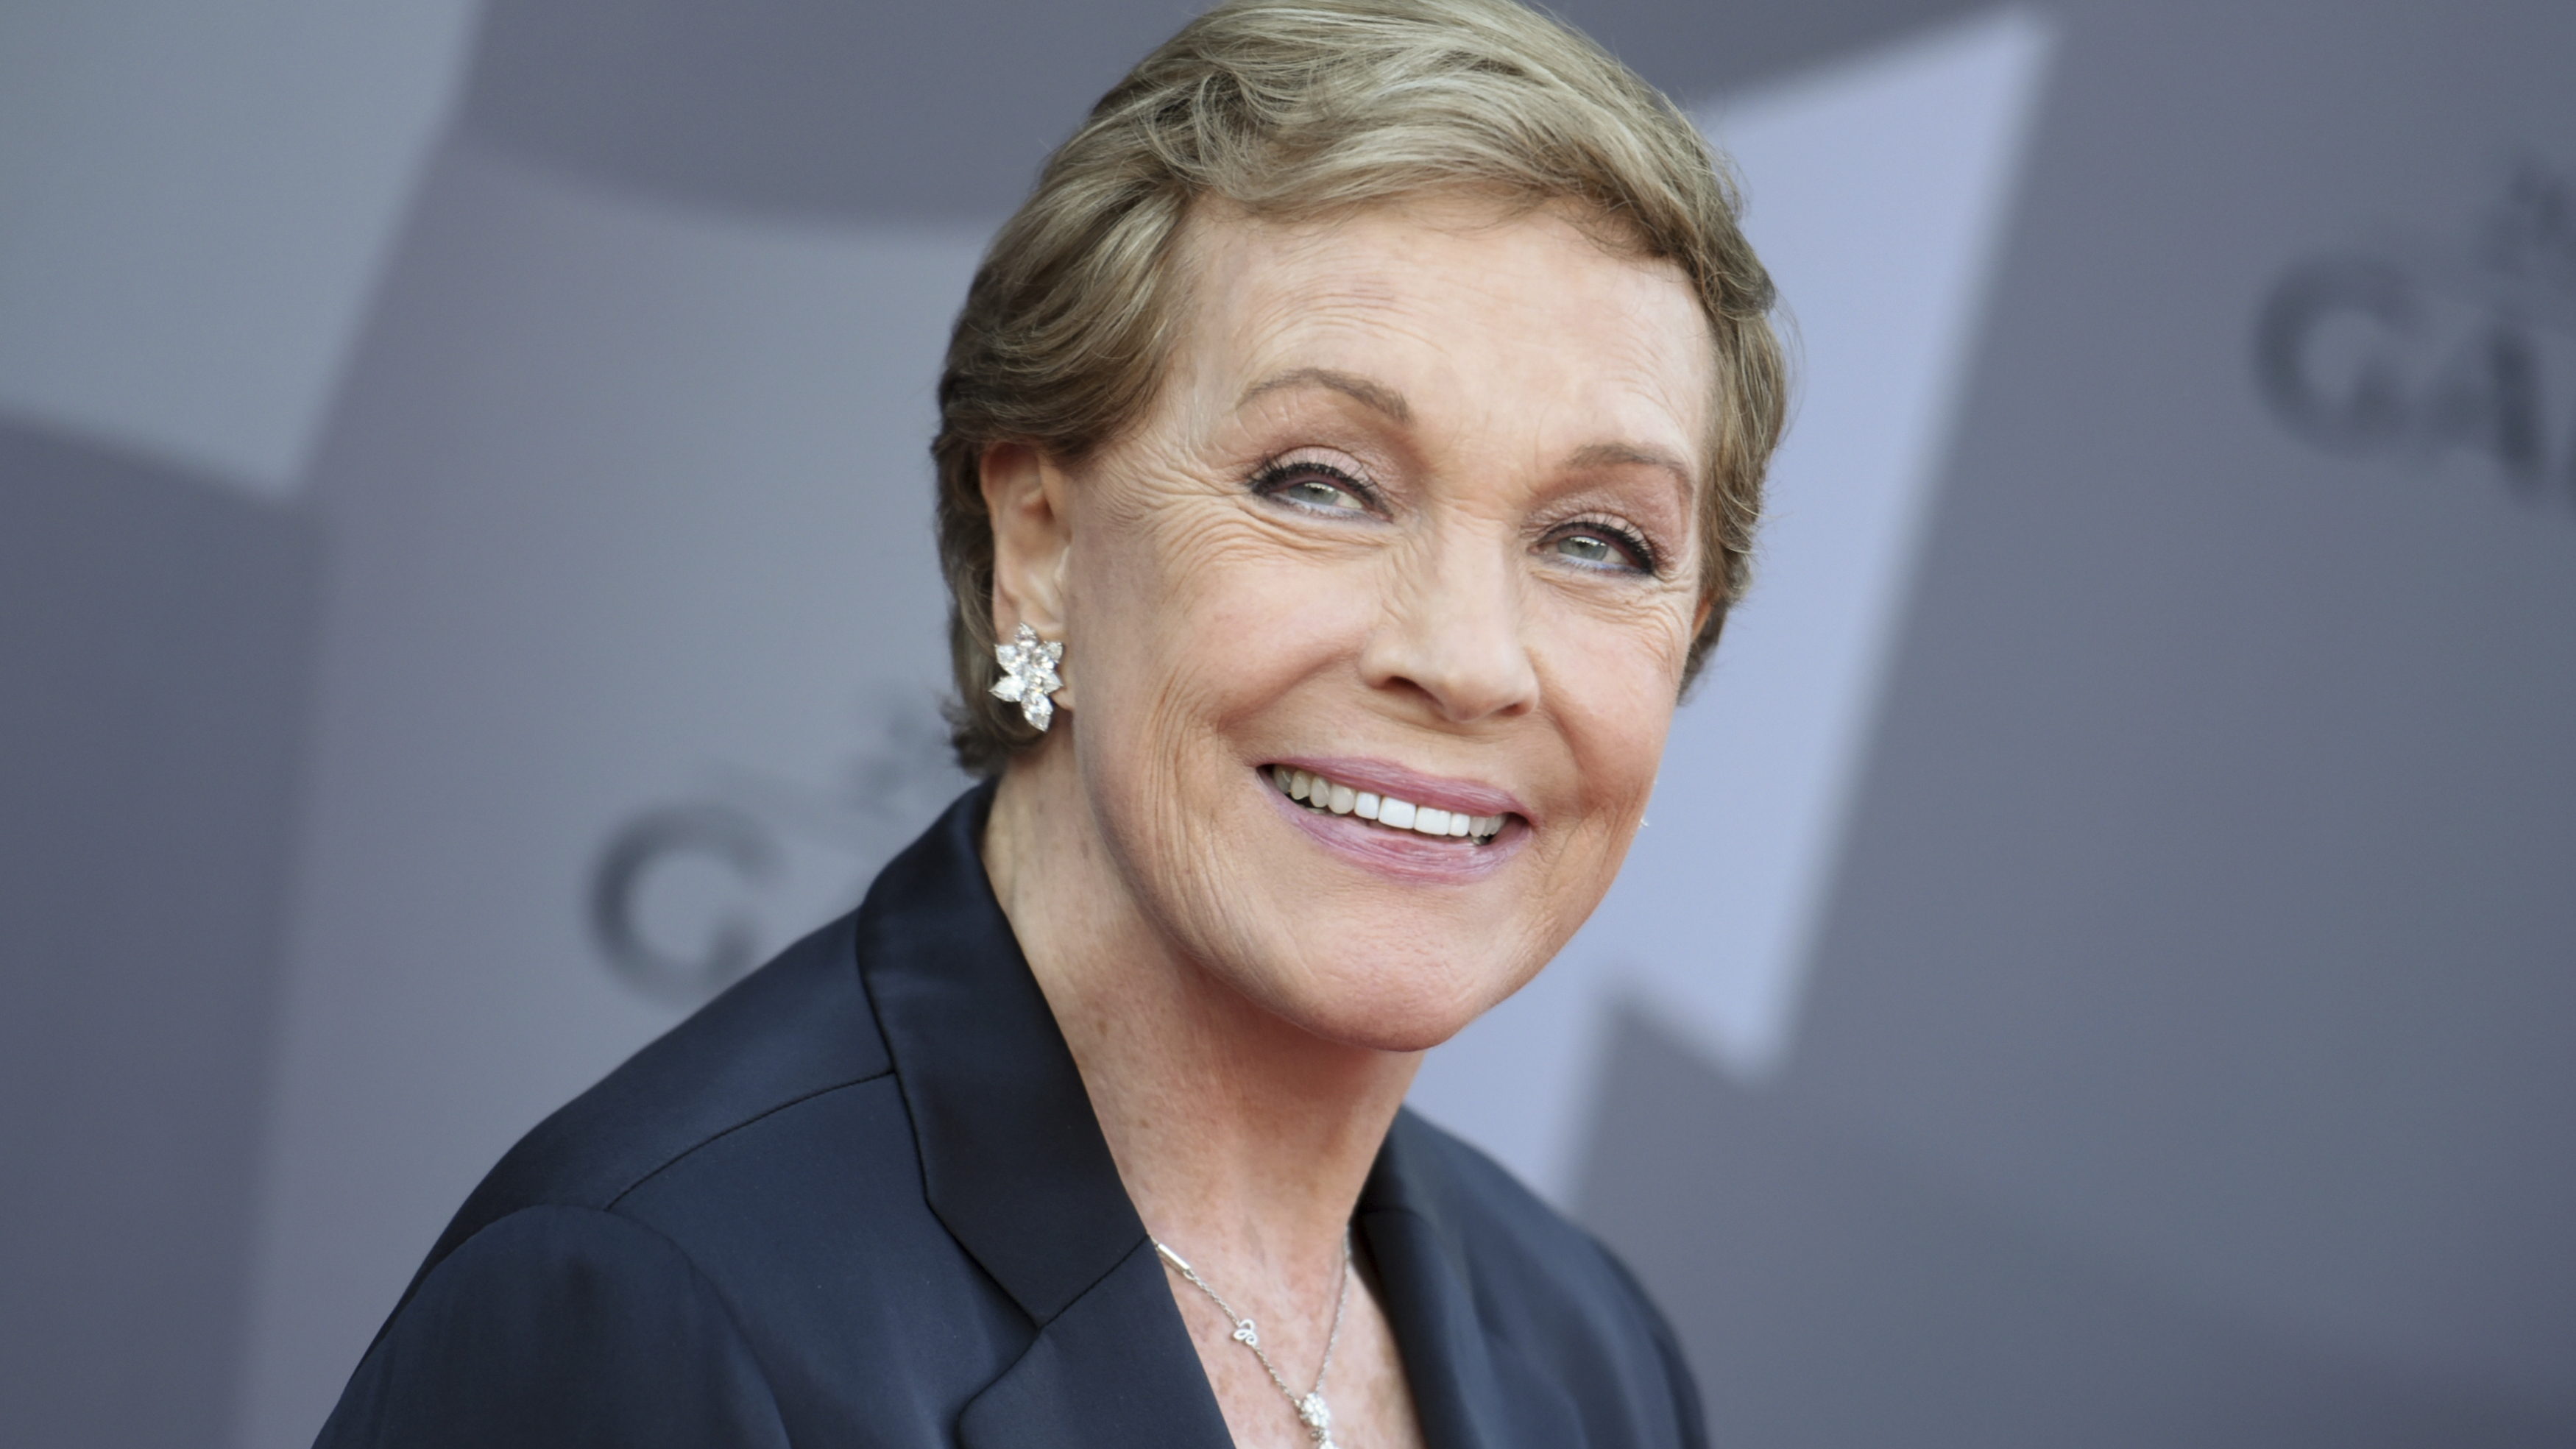 Julie Andrews talks 'second career' and memoir: 'That's a whole new life for me'